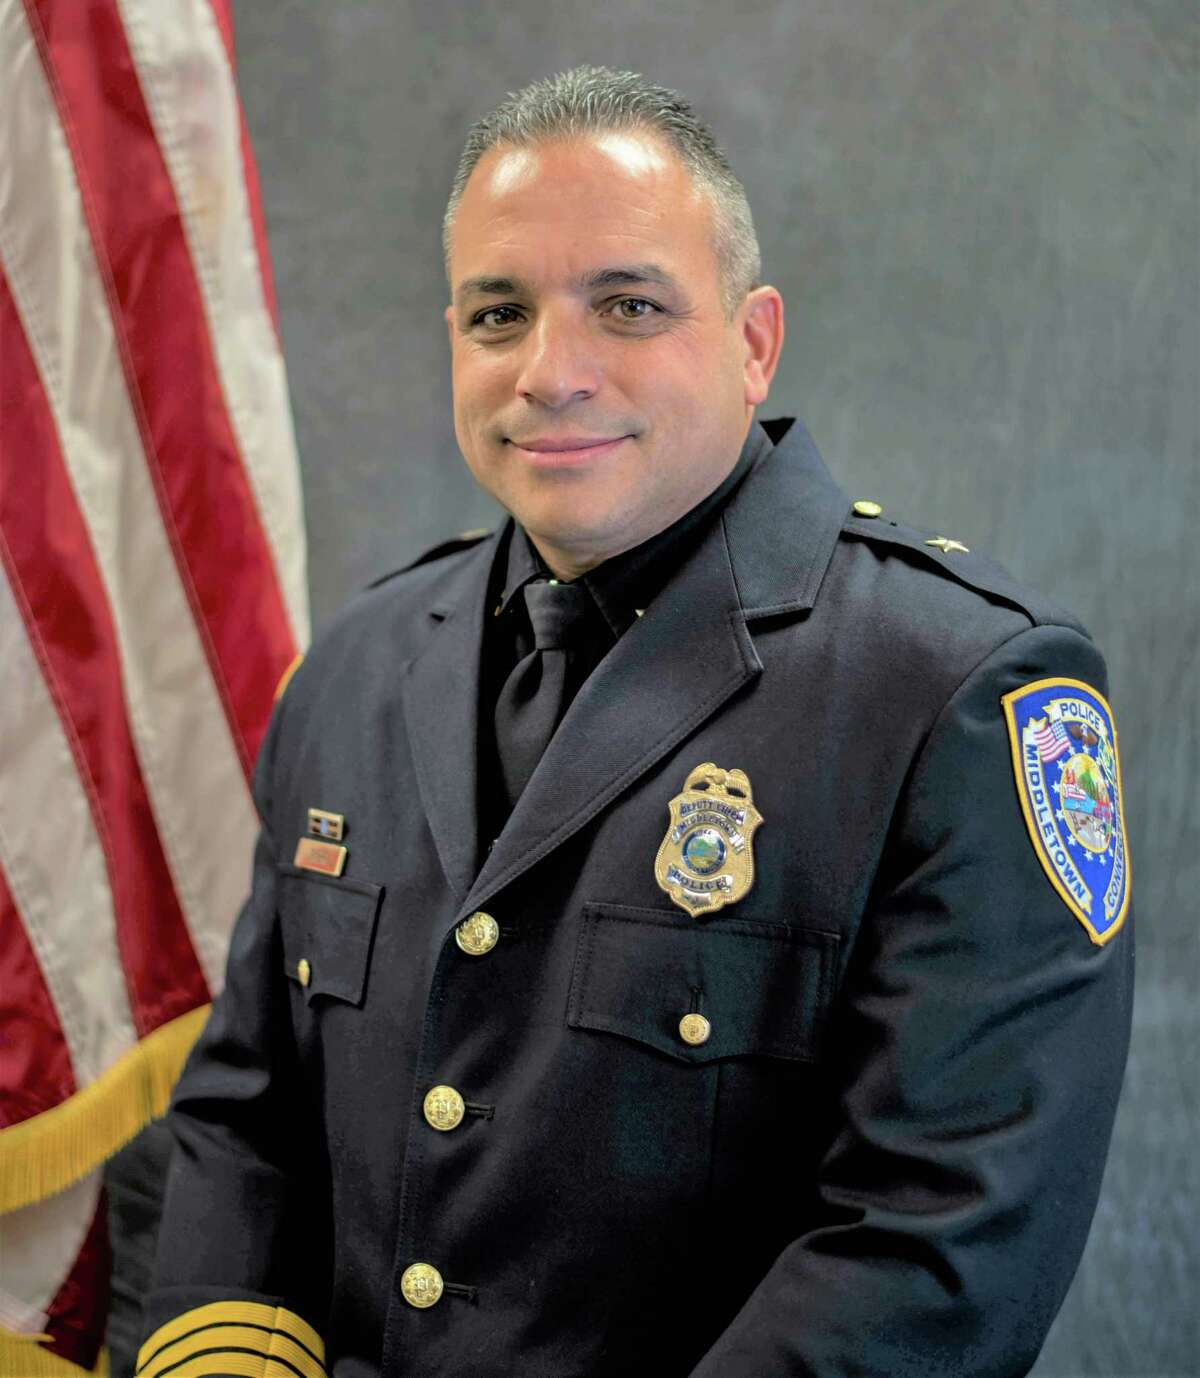 Middletown Acting Police chief Michael Timbro has been filling in for retired chief William McKenna, who retired in June 2020. The city has begun interviewing candidates for the position.